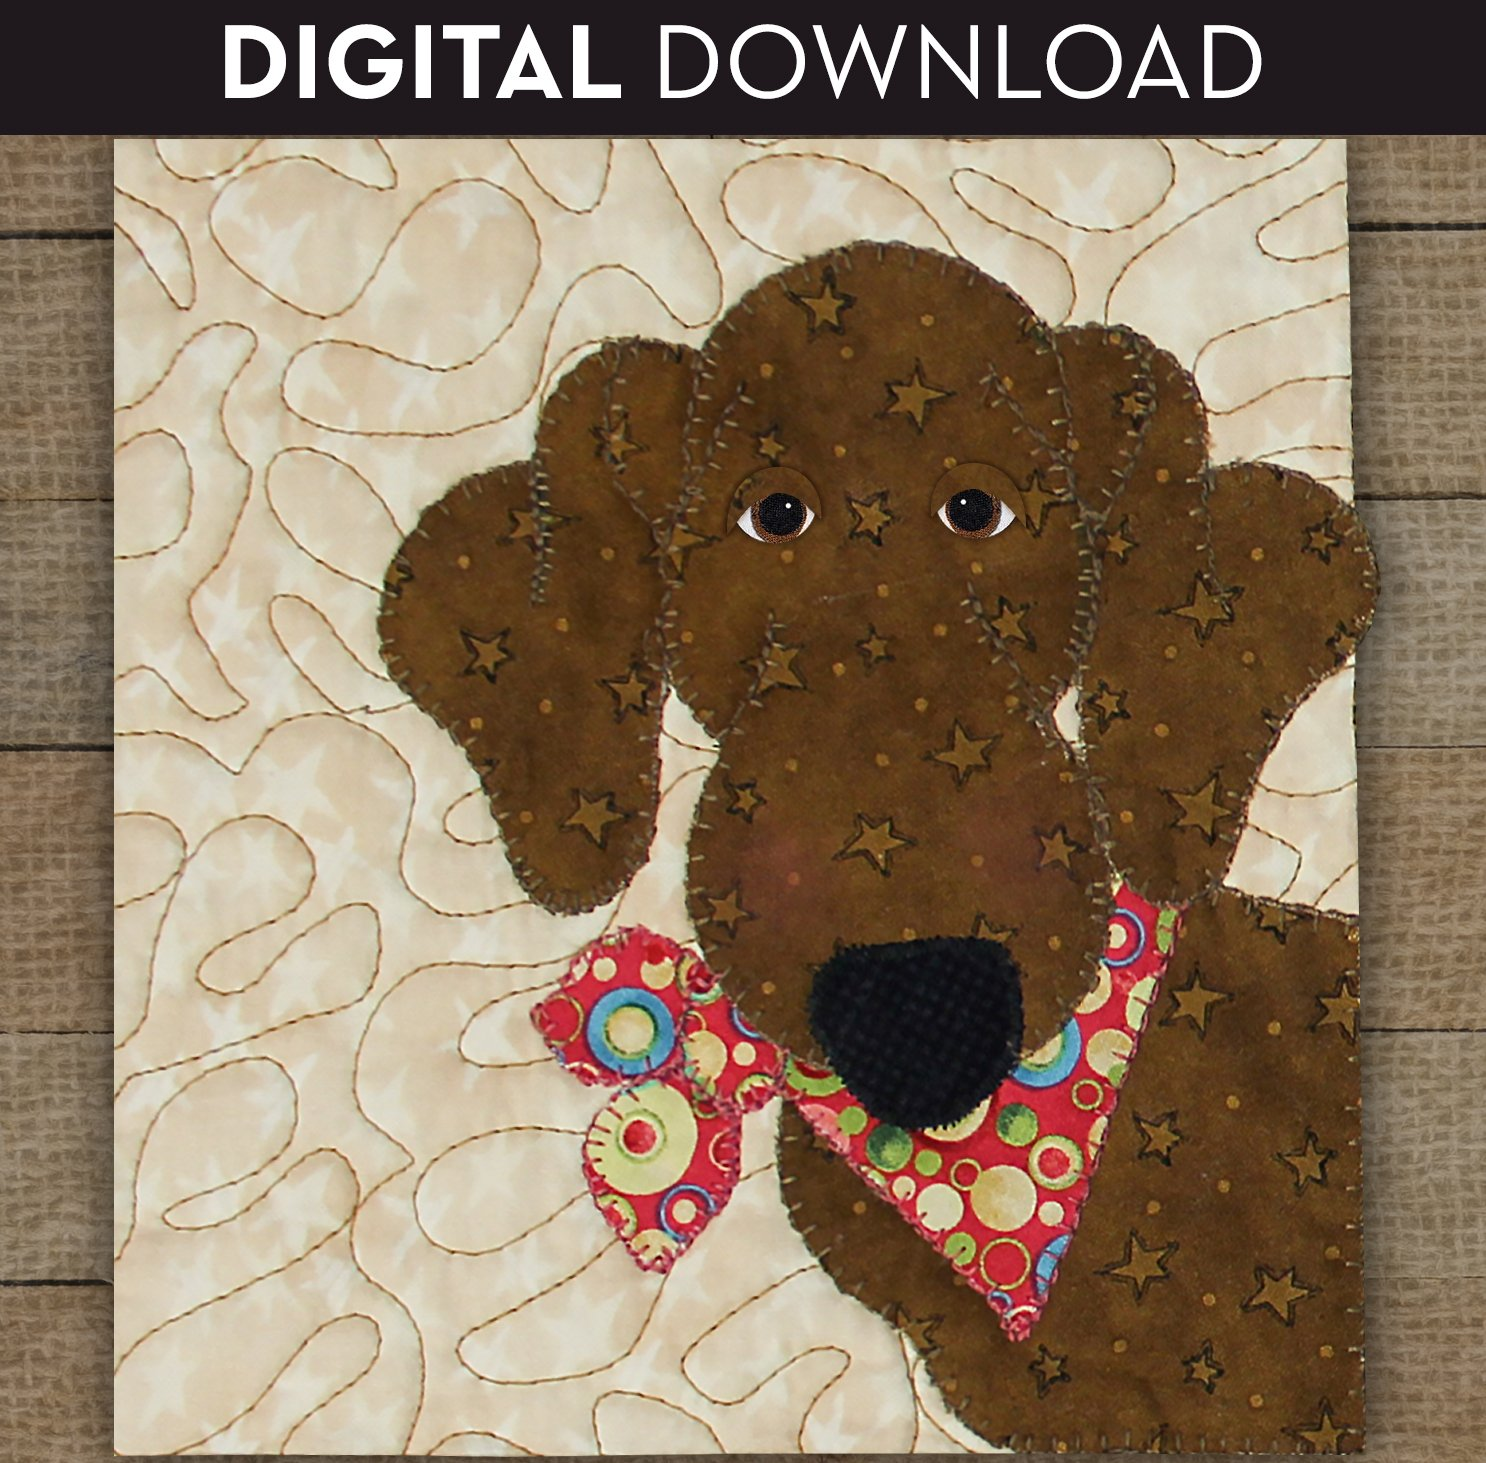 Dachshund - Download